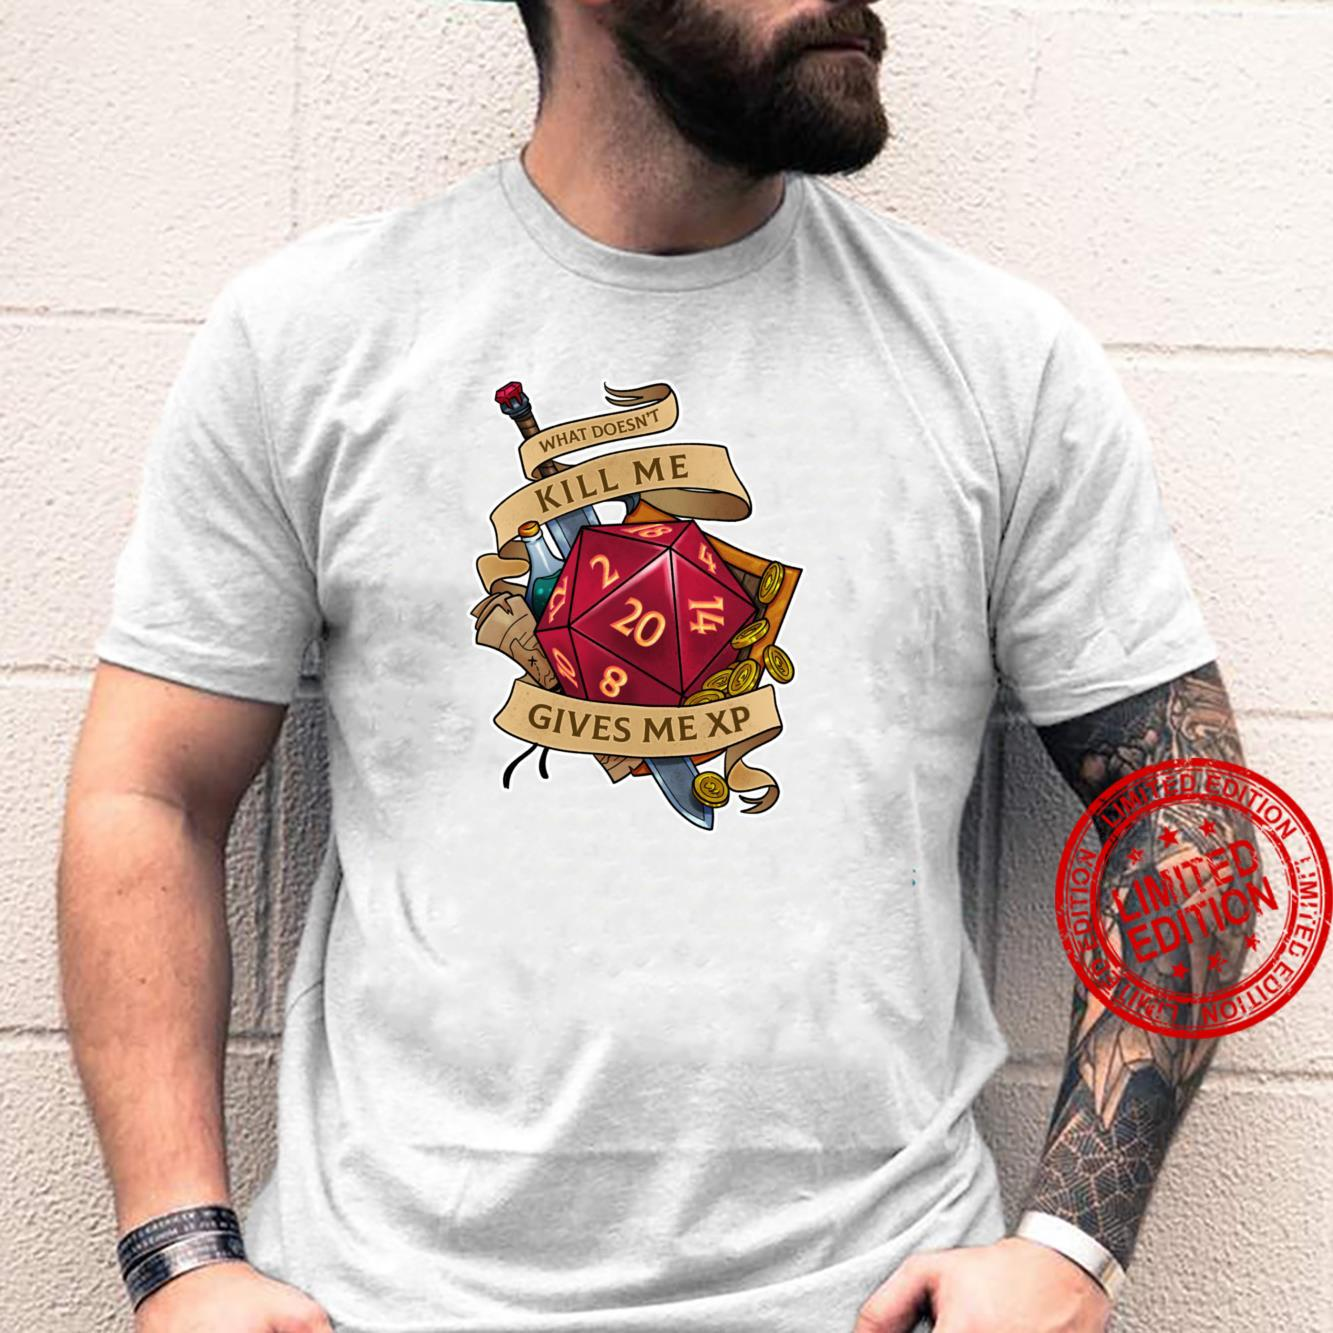 What doesn't kill me Shirt